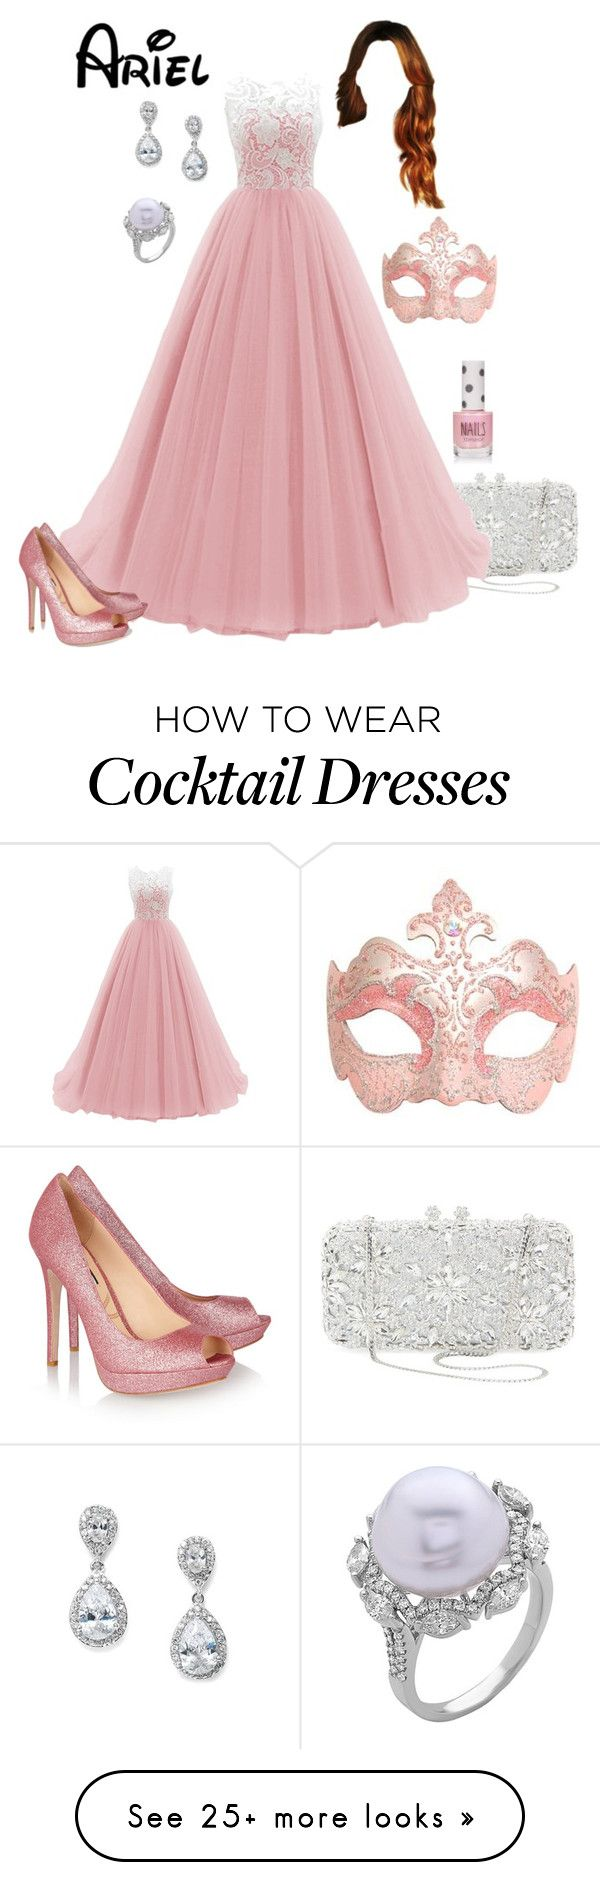 """Disney - Ariel"" by briony-jae on Polyvore featuring Natasha Couture, CO, Lucy Choi London and Topshop"